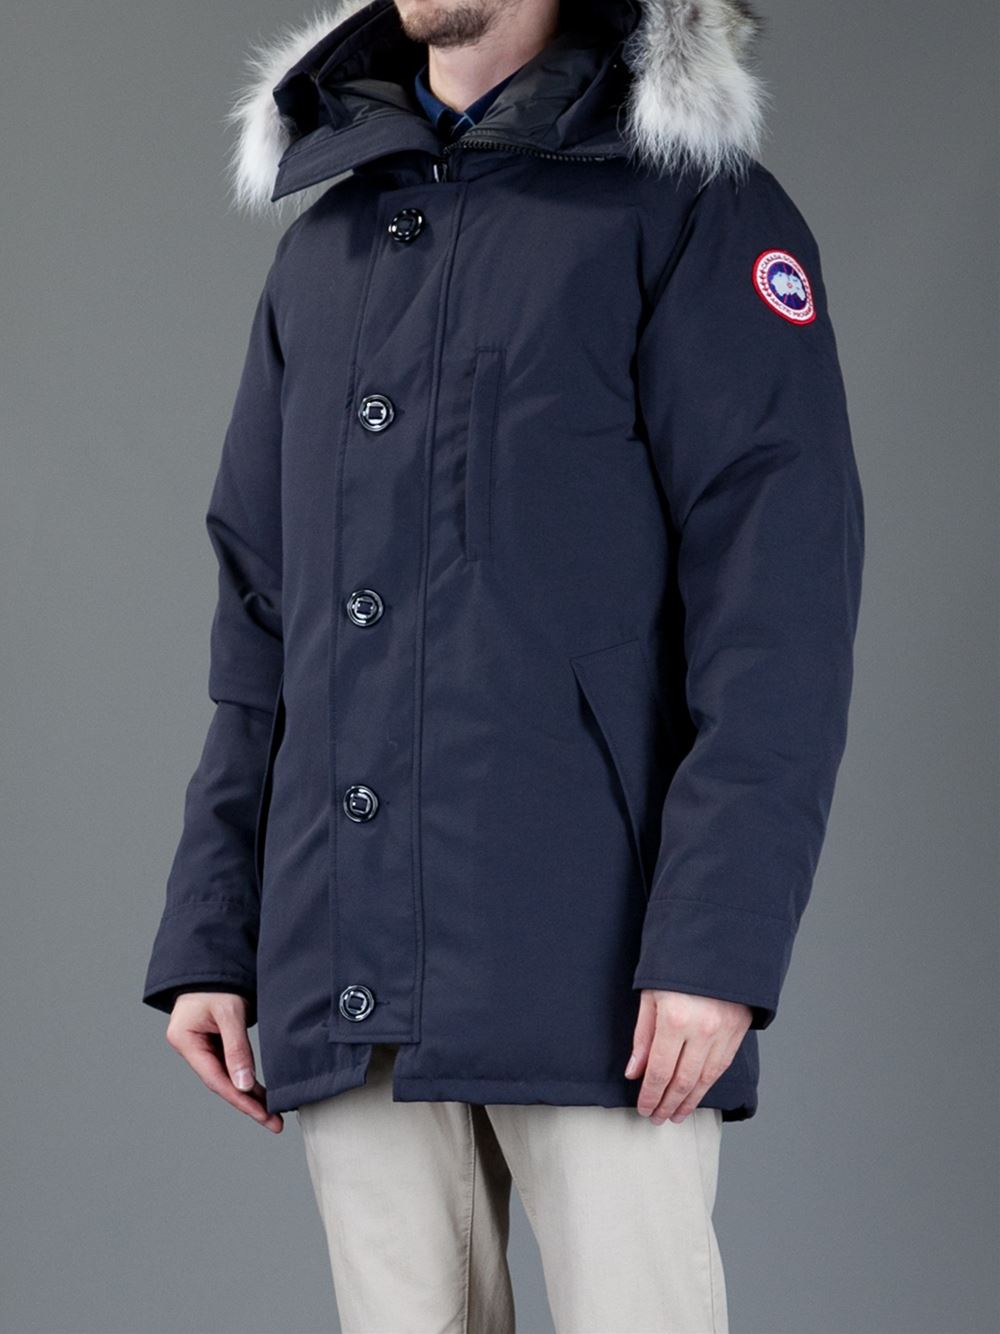 33e5f8a0671 Canada Goose 'chateau' Parka in Blue for Men - Lyst